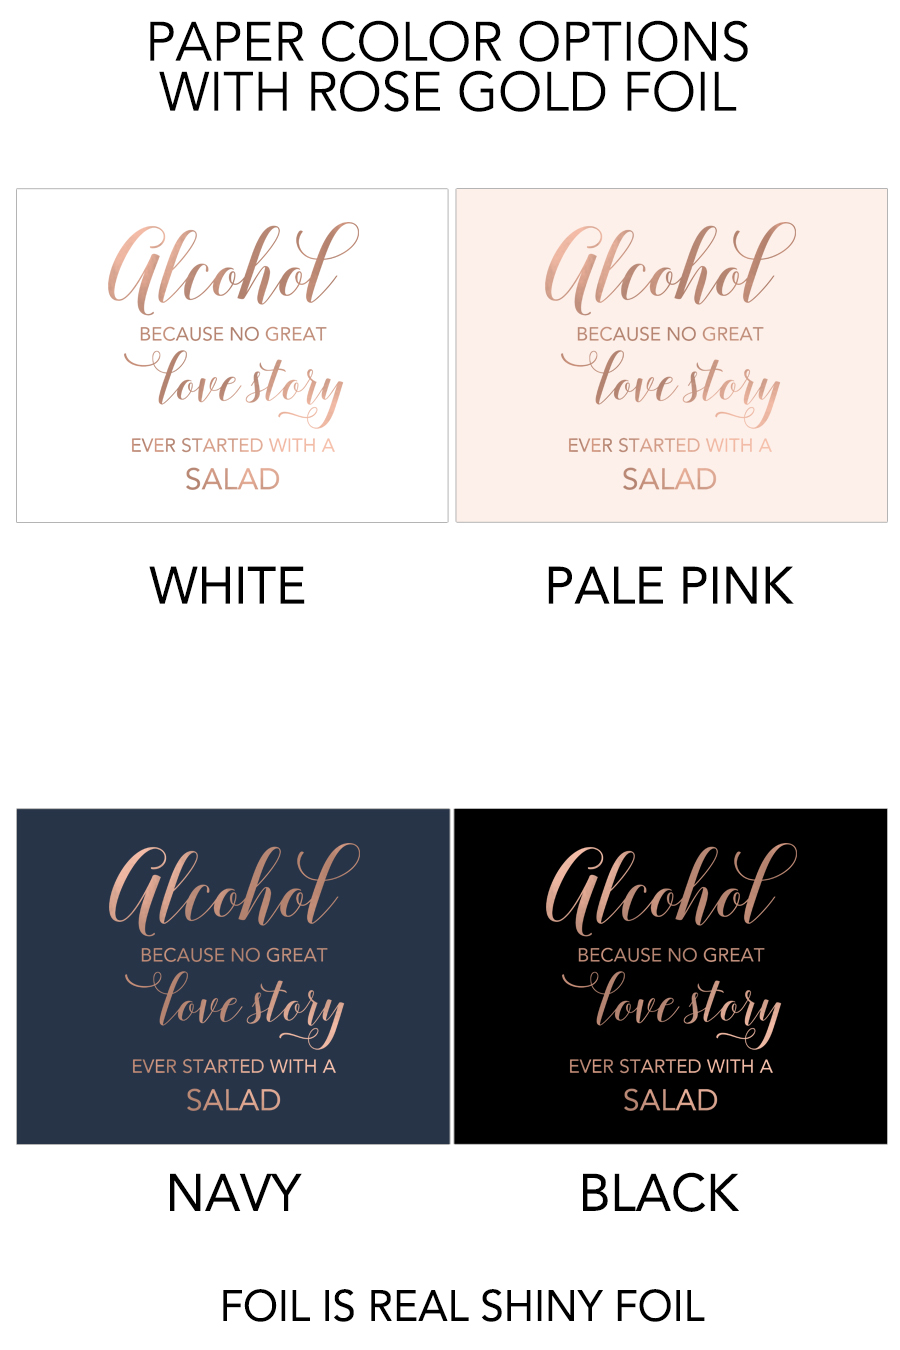 Alcohol Because No Great Love Story Sign